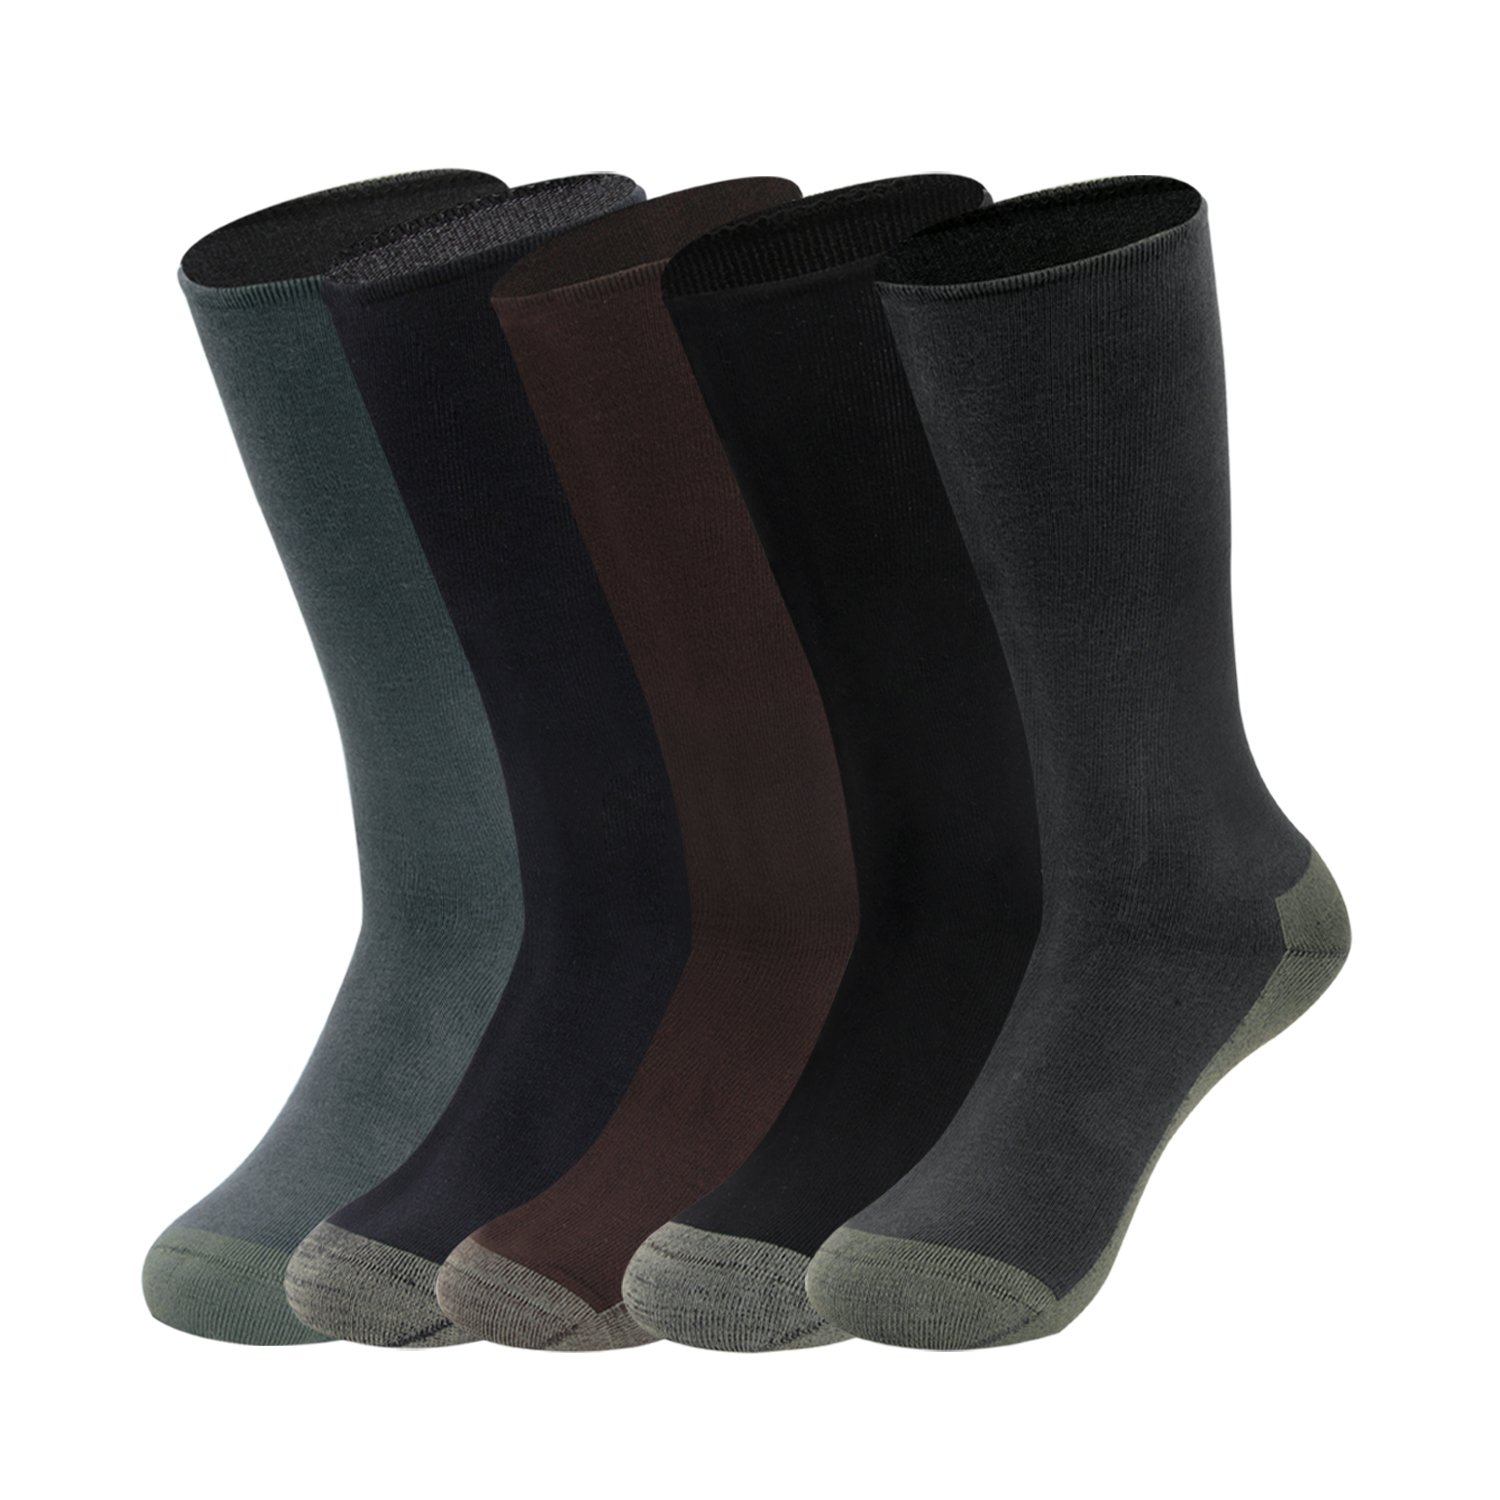 Gather Other 5 Pairs Antibacteria Anti Odor Performance Dress Socks with Copper Fiber for Men,Narrow Ribtop